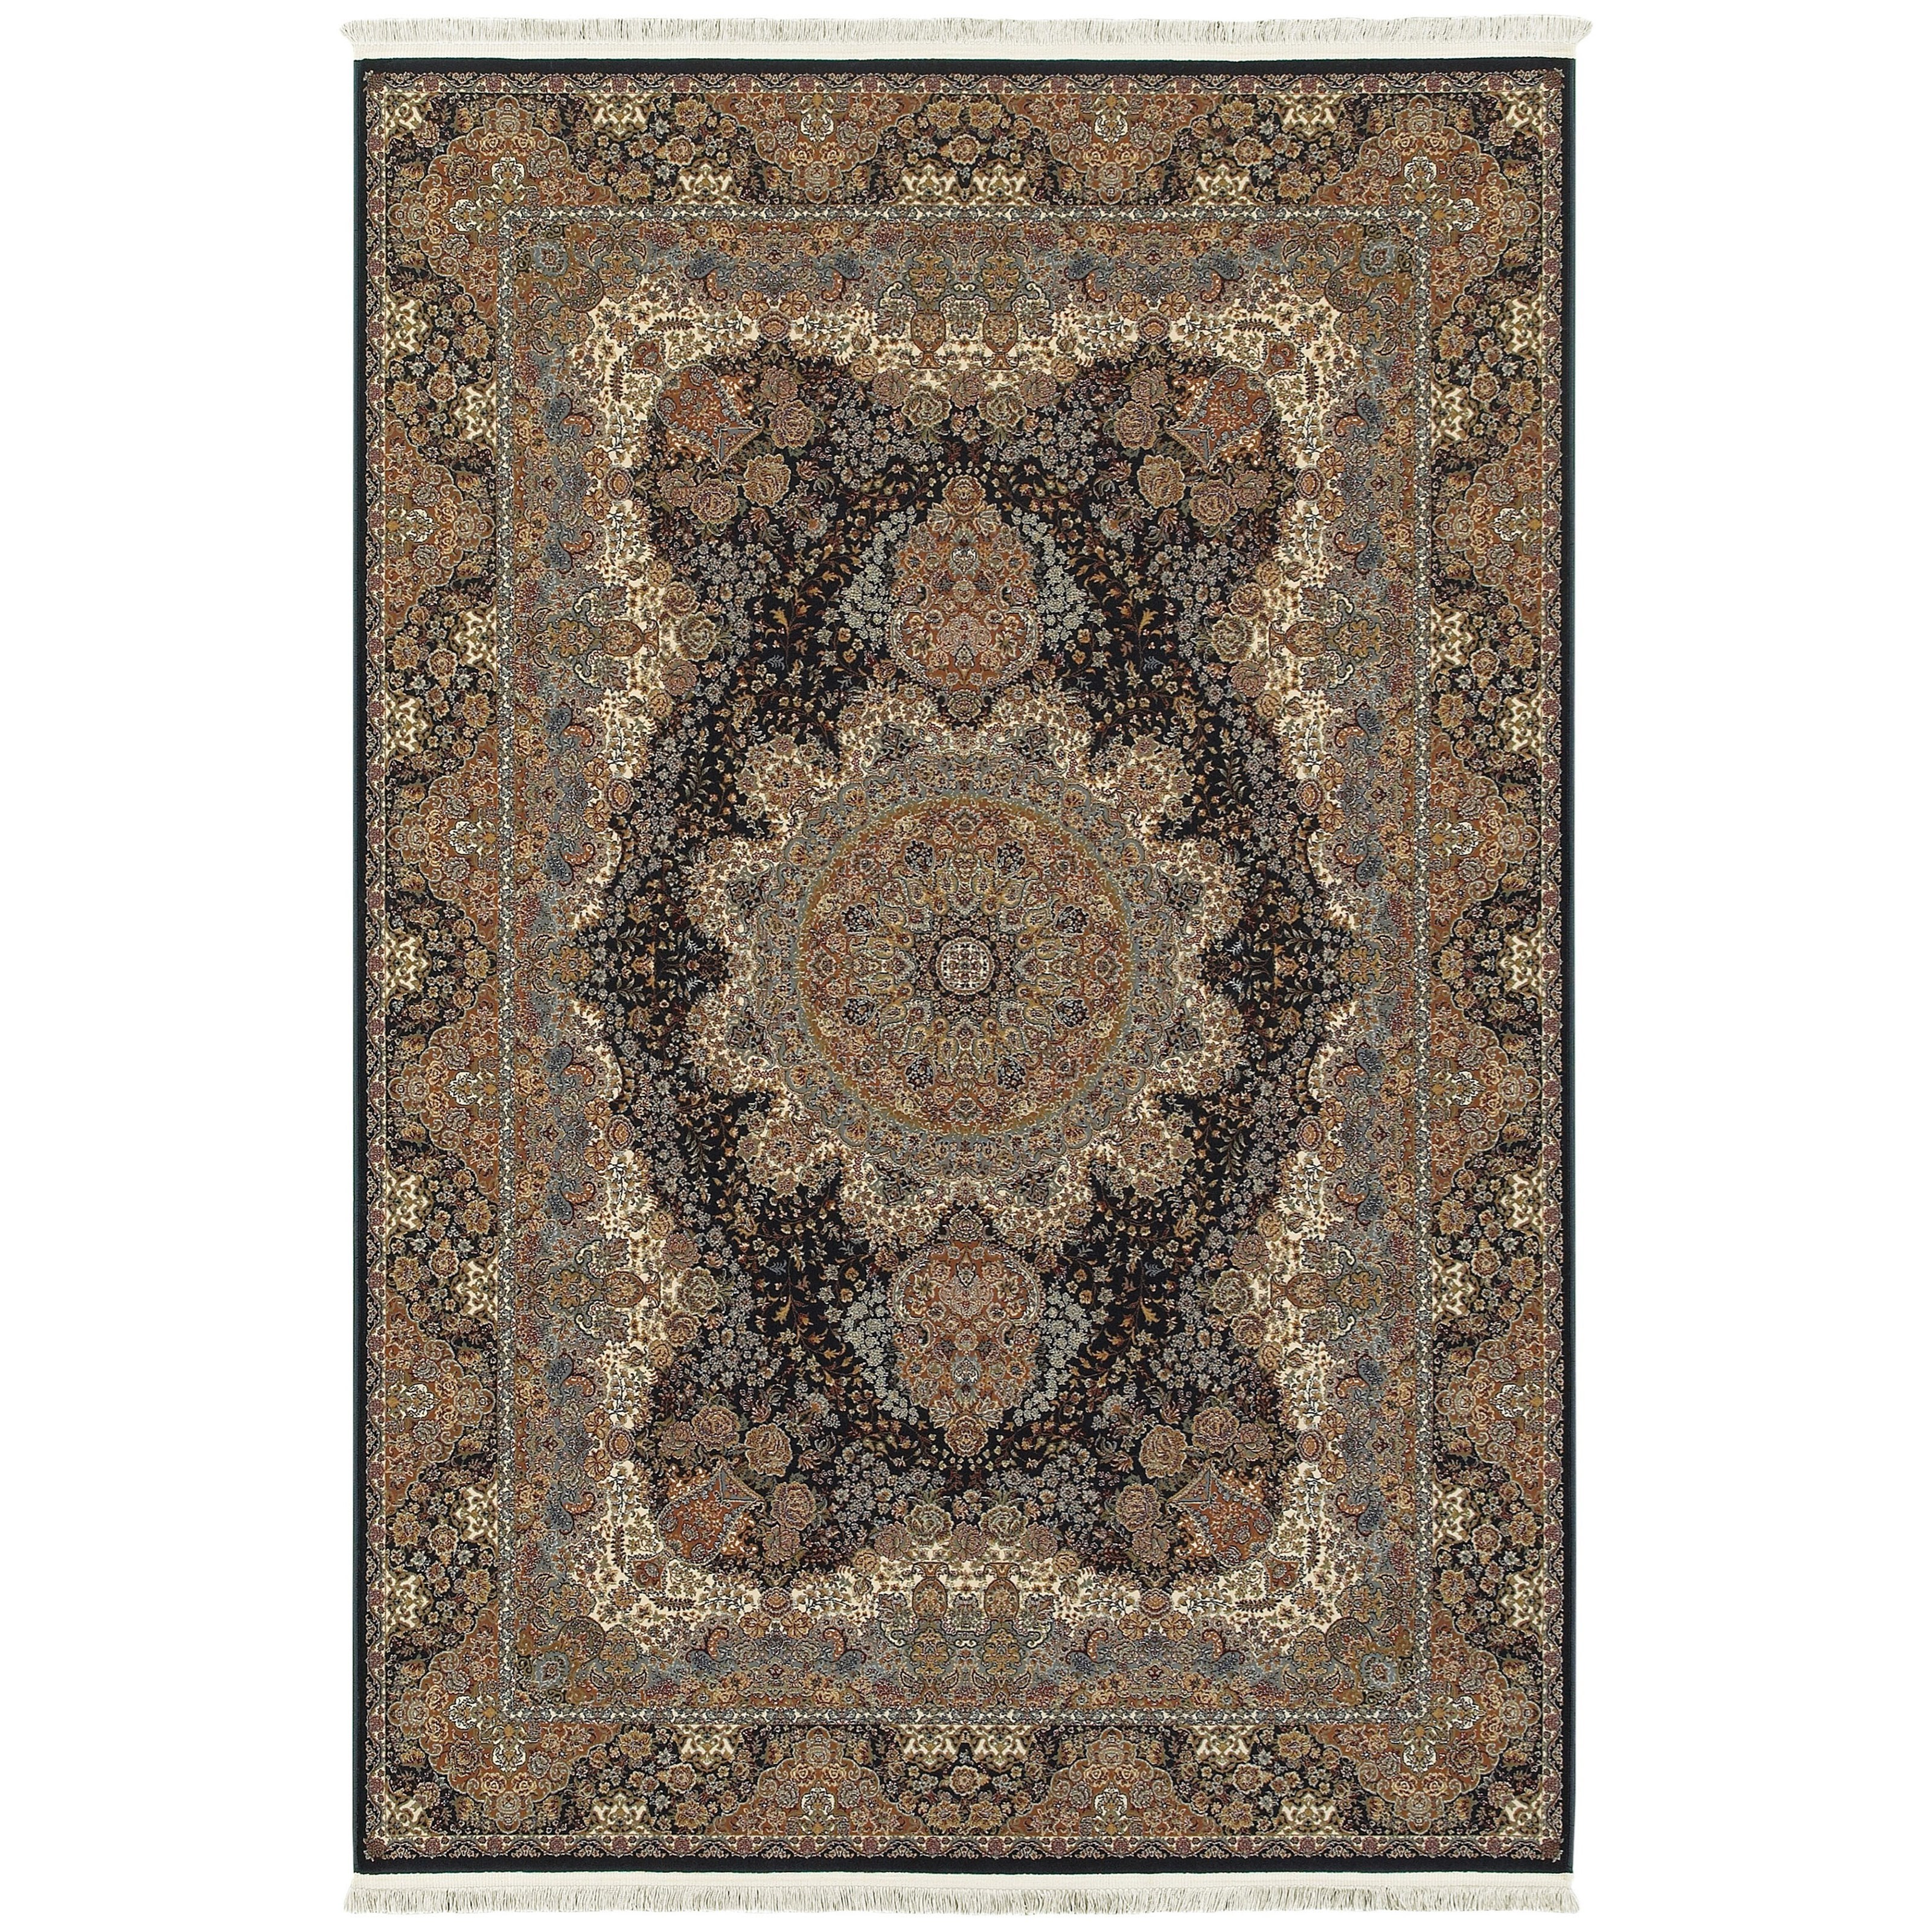 "Masterpiece 5' 3"" X  7' 6"" Rectangle Rug by Oriental Weavers at Godby Home Furnishings"